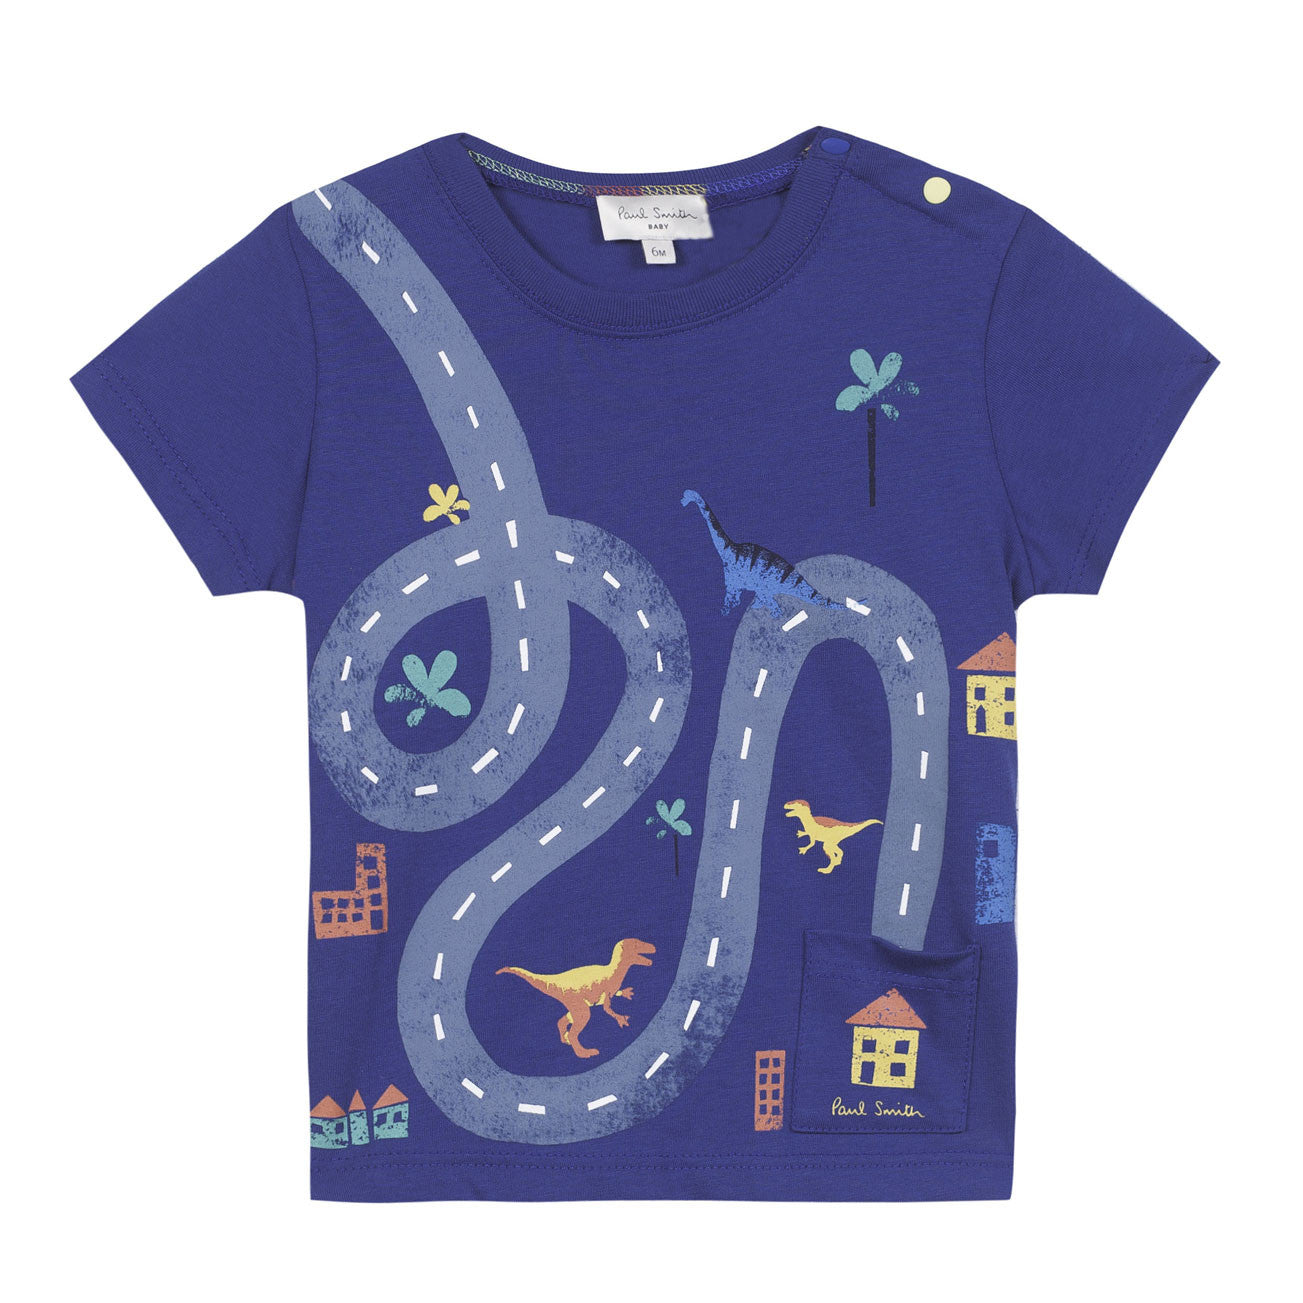 Paul Smith Baby Blue Road Tee - Ladida